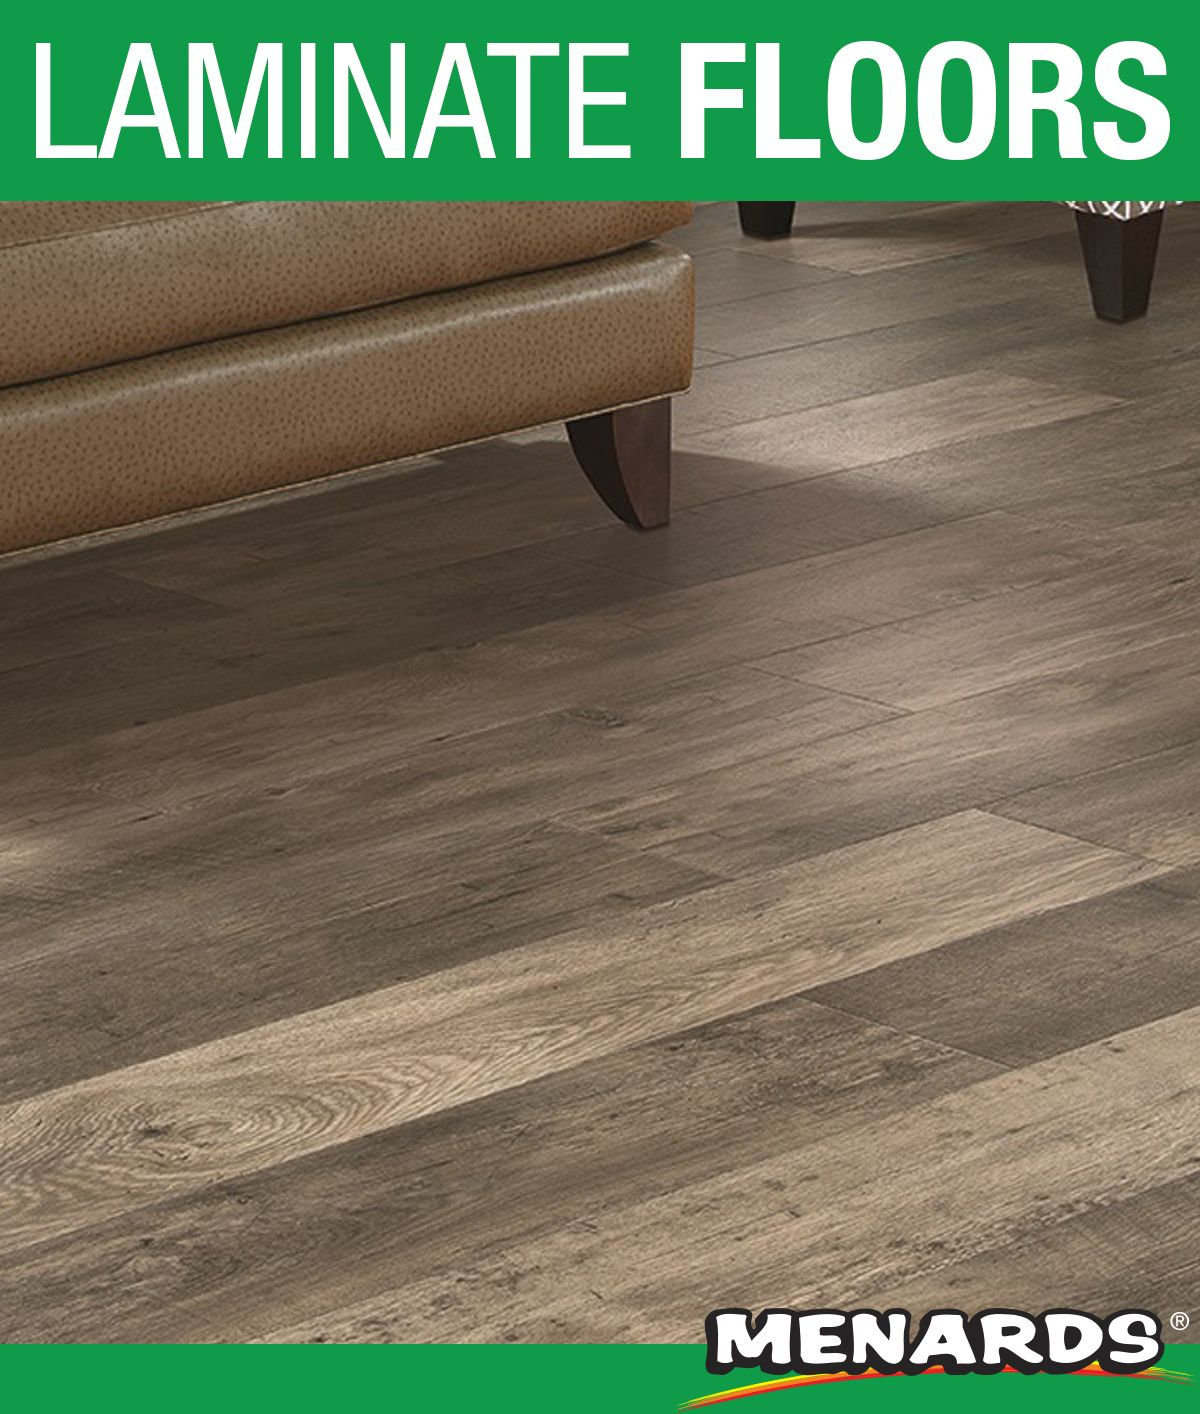 Mohawk PerfectSeal laminate flooring uses an innovative